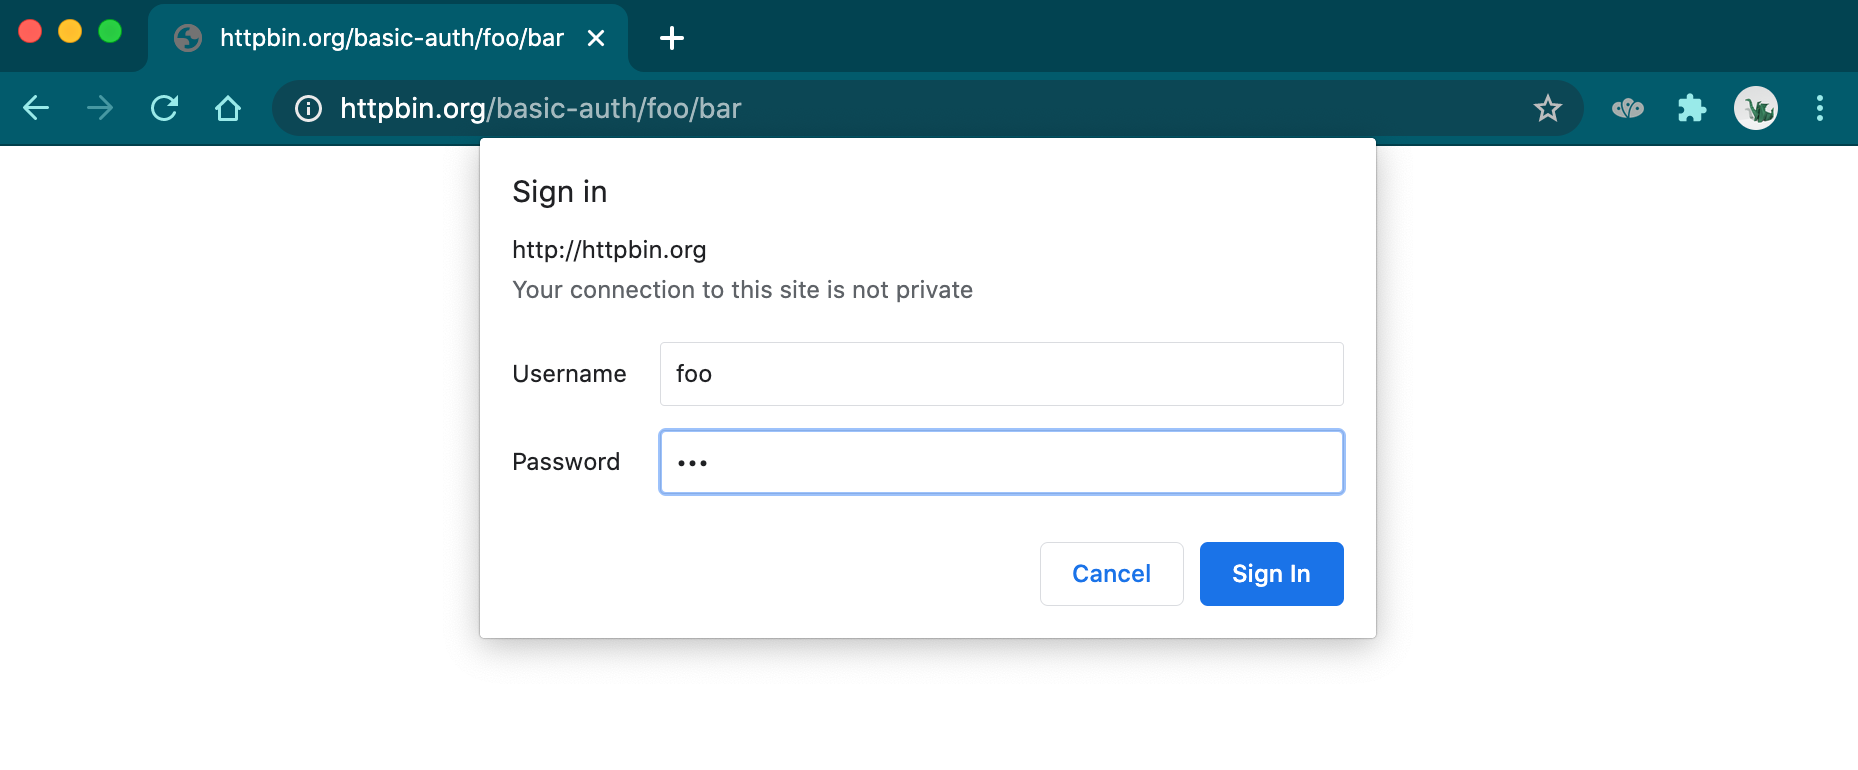 Browser prompt asking for a username and password